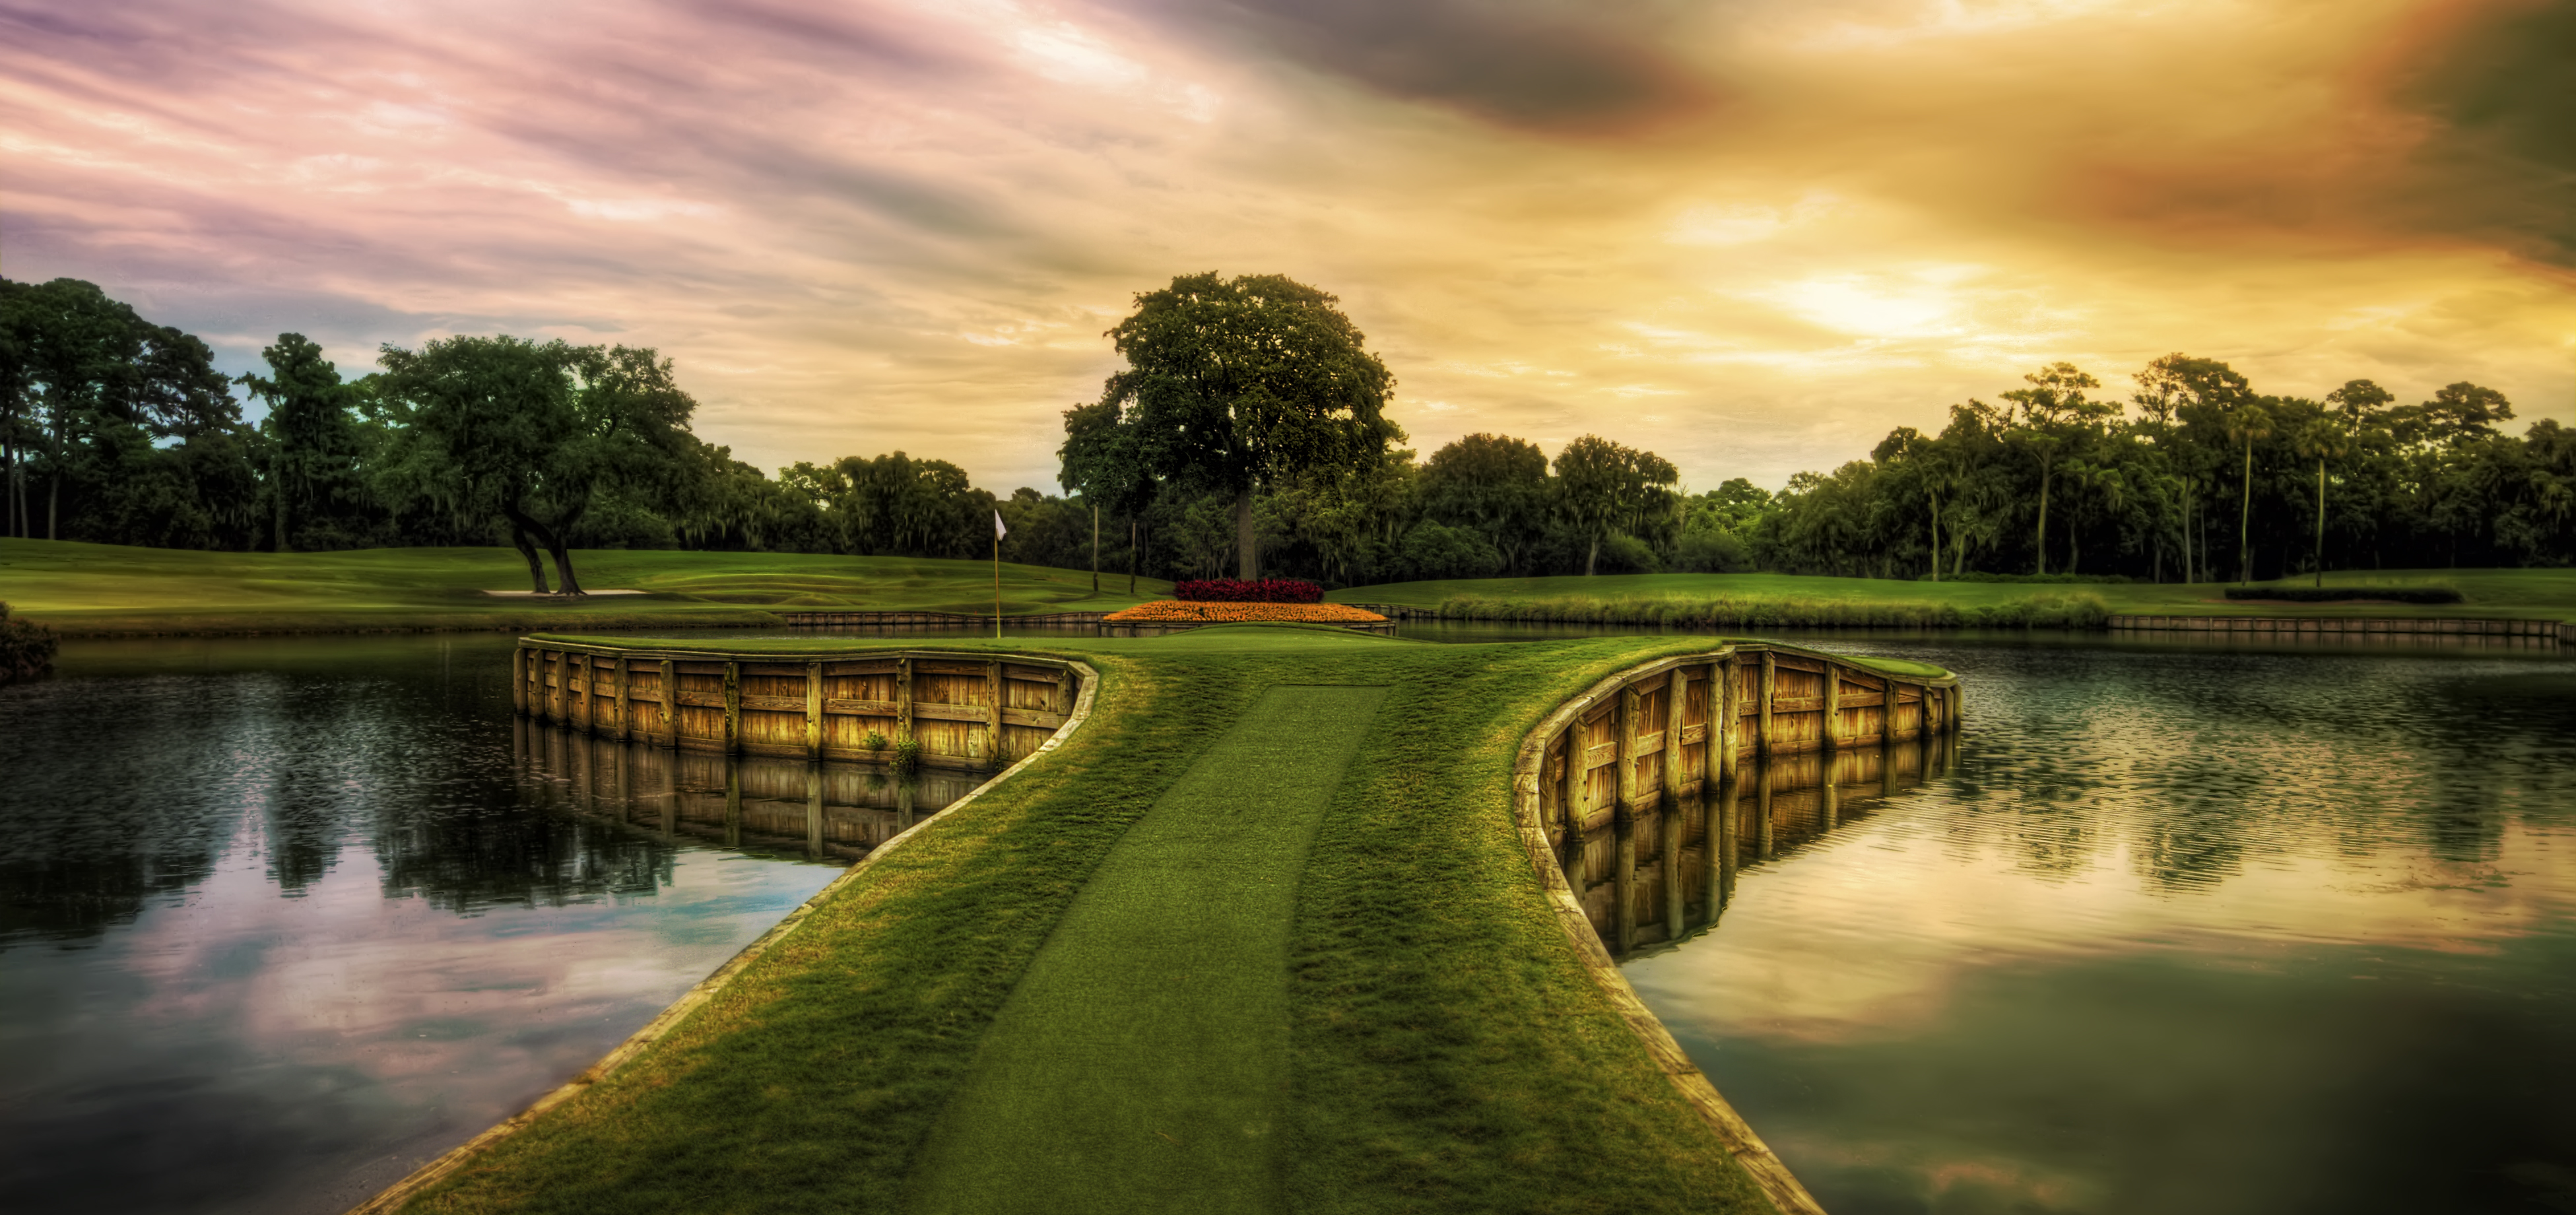 ponte vedra beach personals Ponte vedra beach is synonymous with golf – though it offers many other allures, like its 40-foot sand dunes which are among the highest in florida.